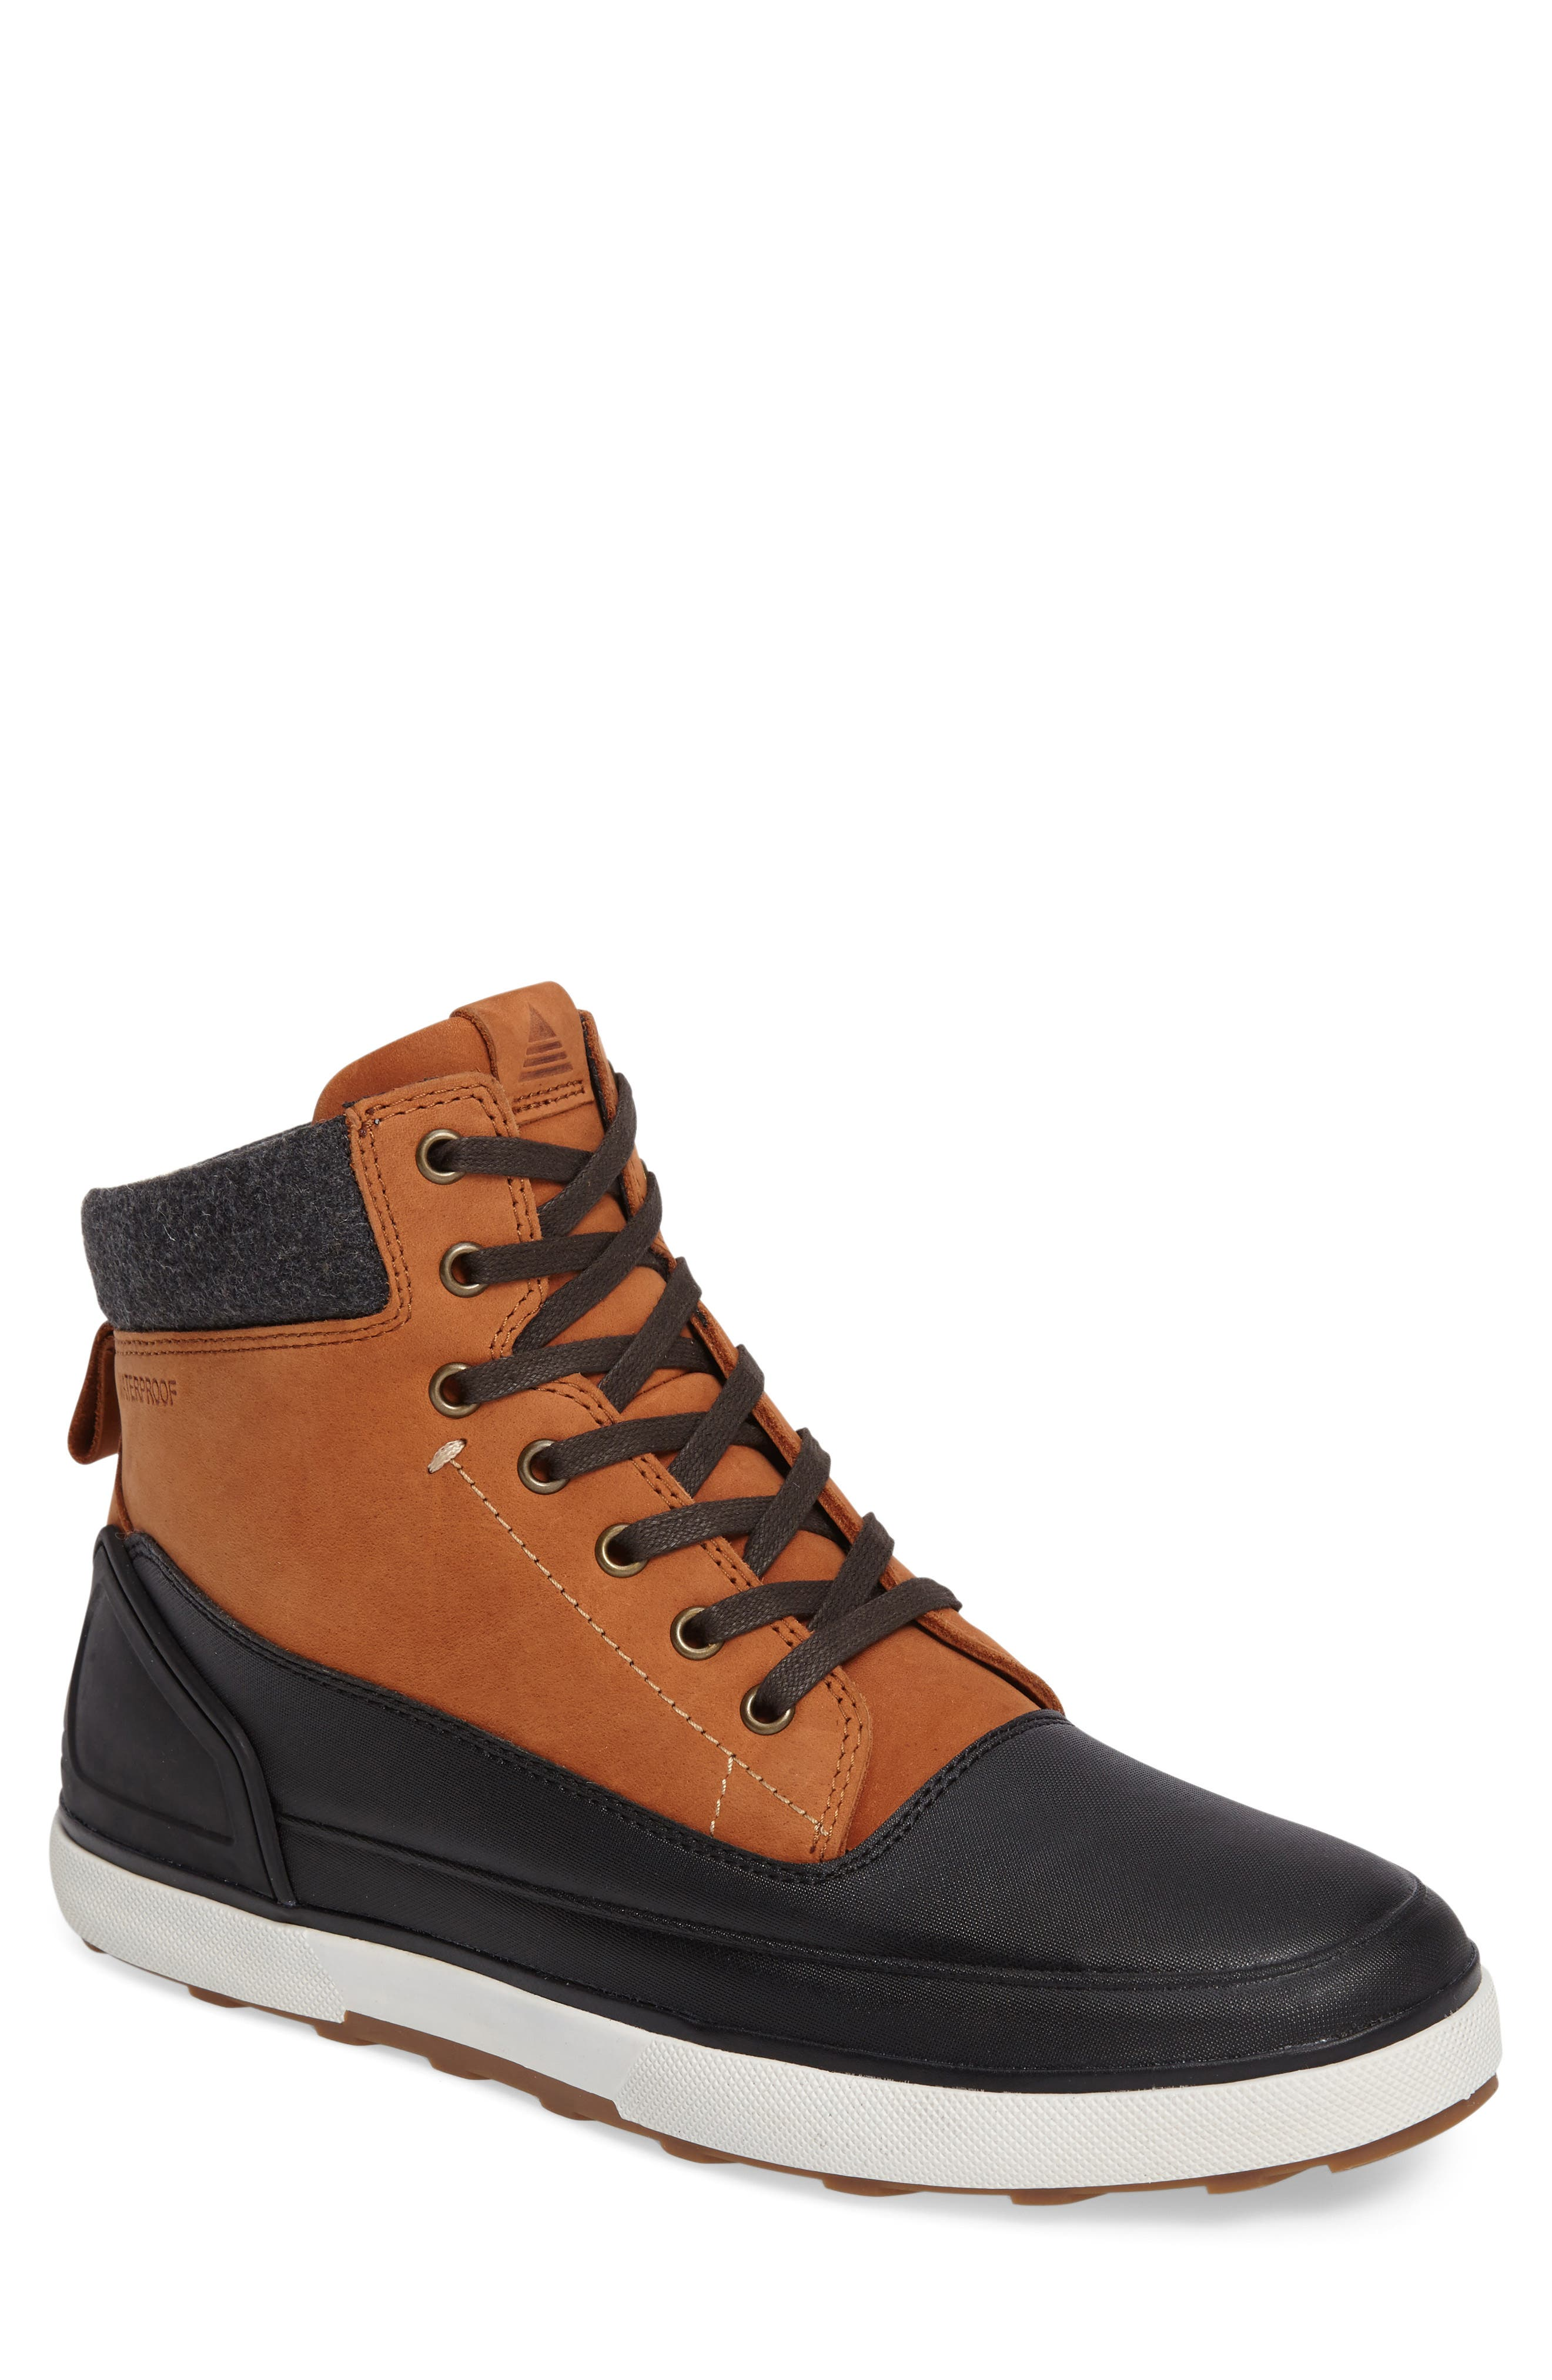 ALDO Benis Boot, Main, color, 240